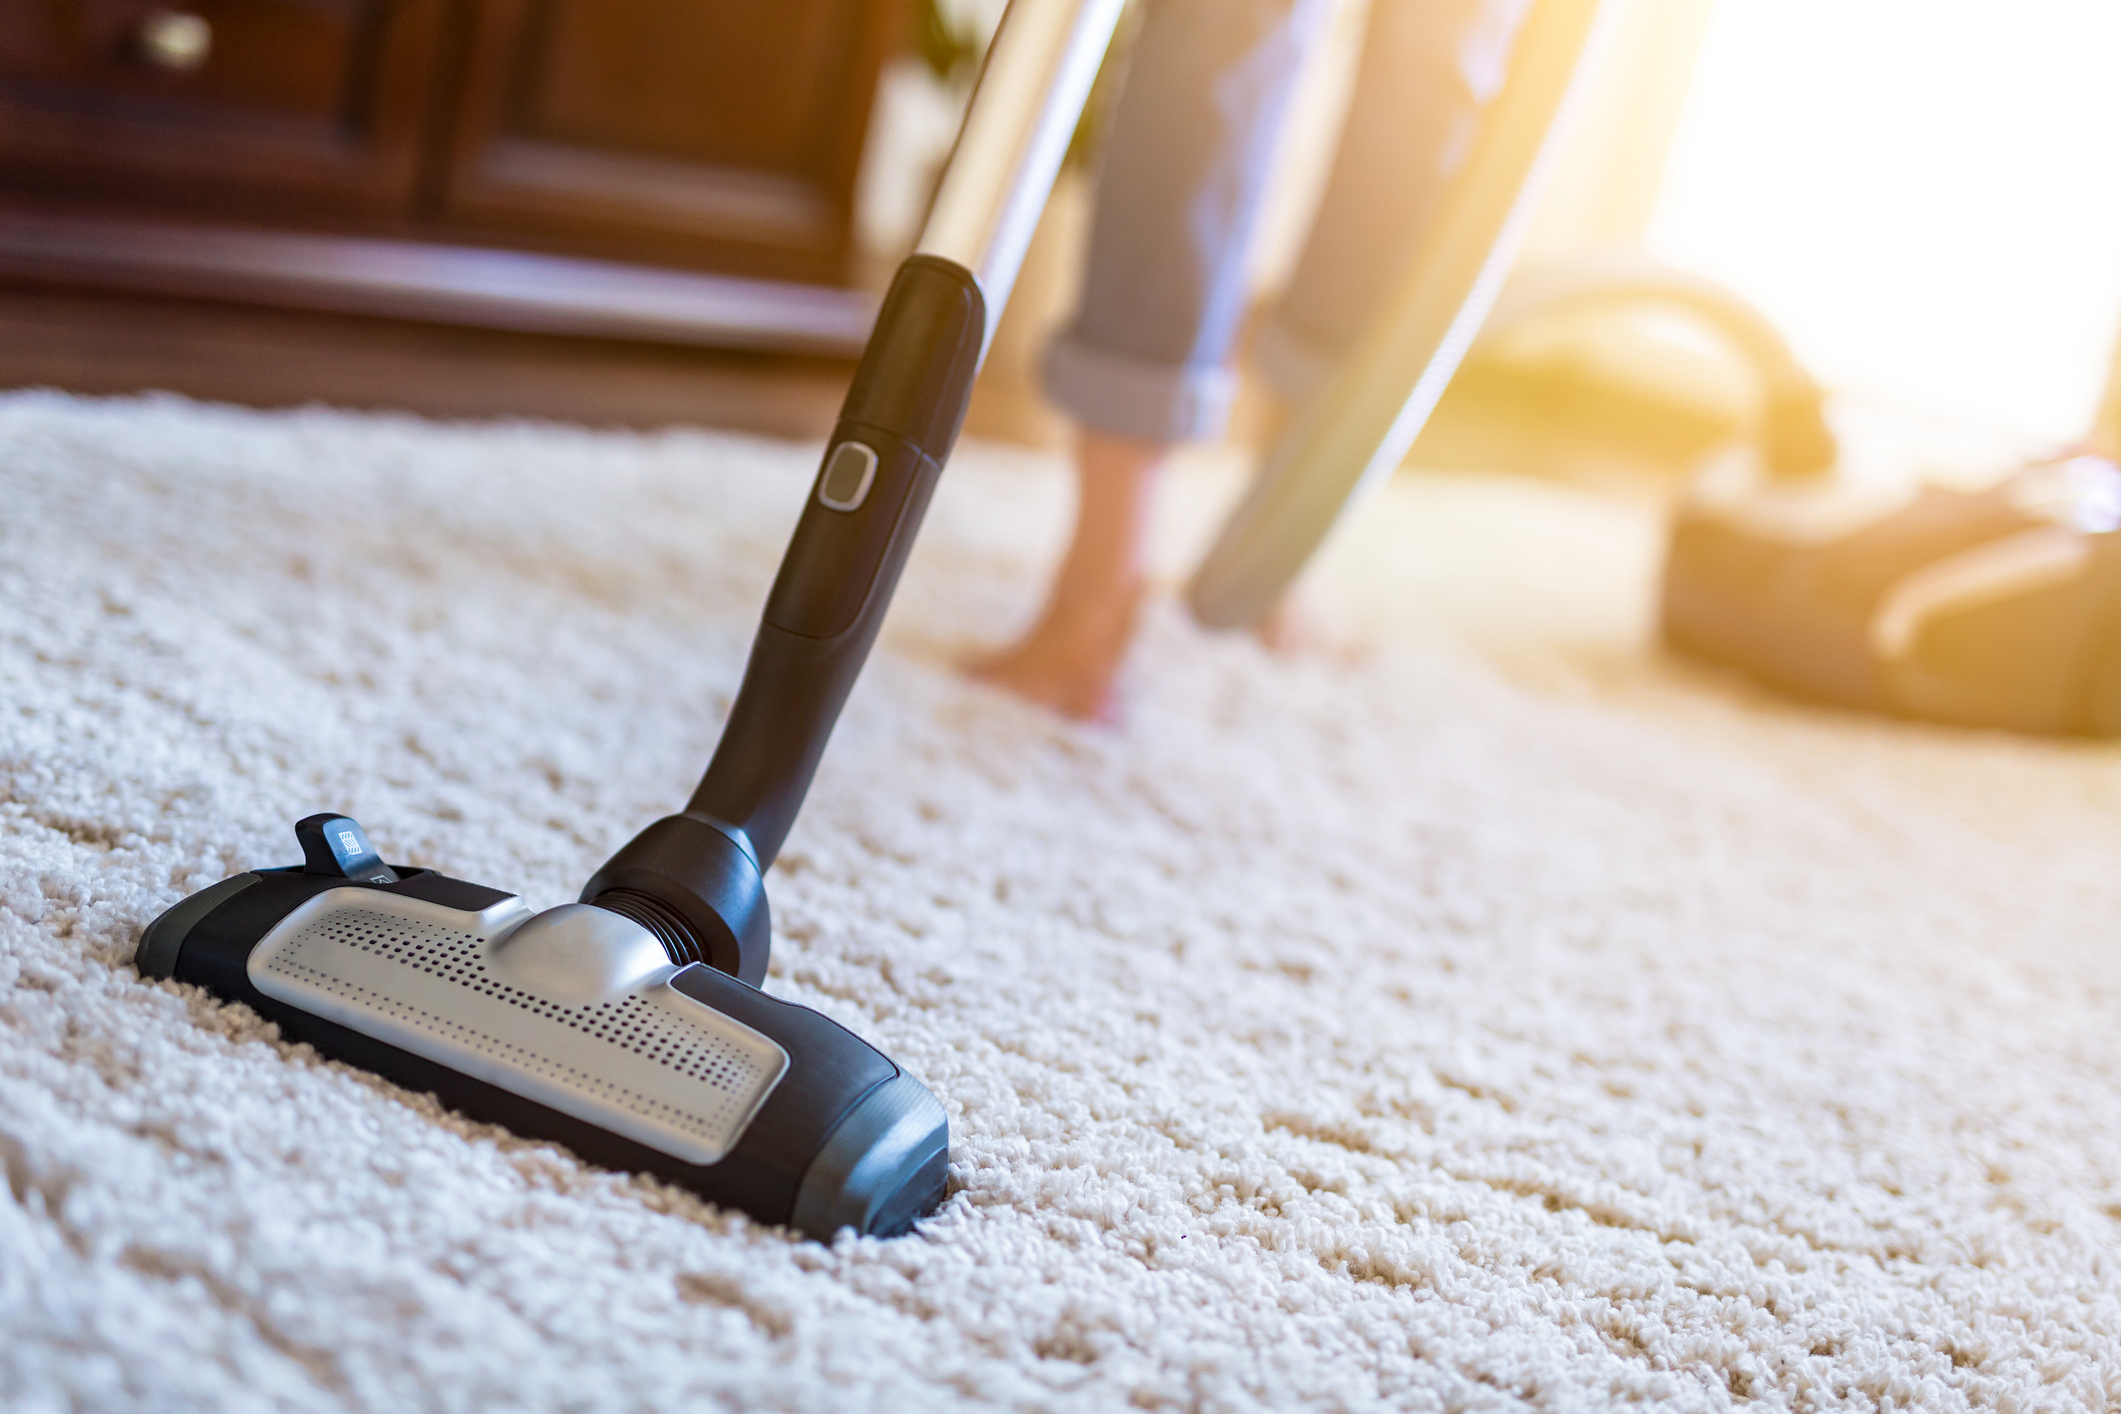 The All 4 You Difference - At the heart of All 4 You Cleaning Services is a passion to give customers maximum satisfaction on all cleaning services. We go the extra mile to ensure that our customers are completely satisfied, making us one of Cleveland's best cleaning providers.